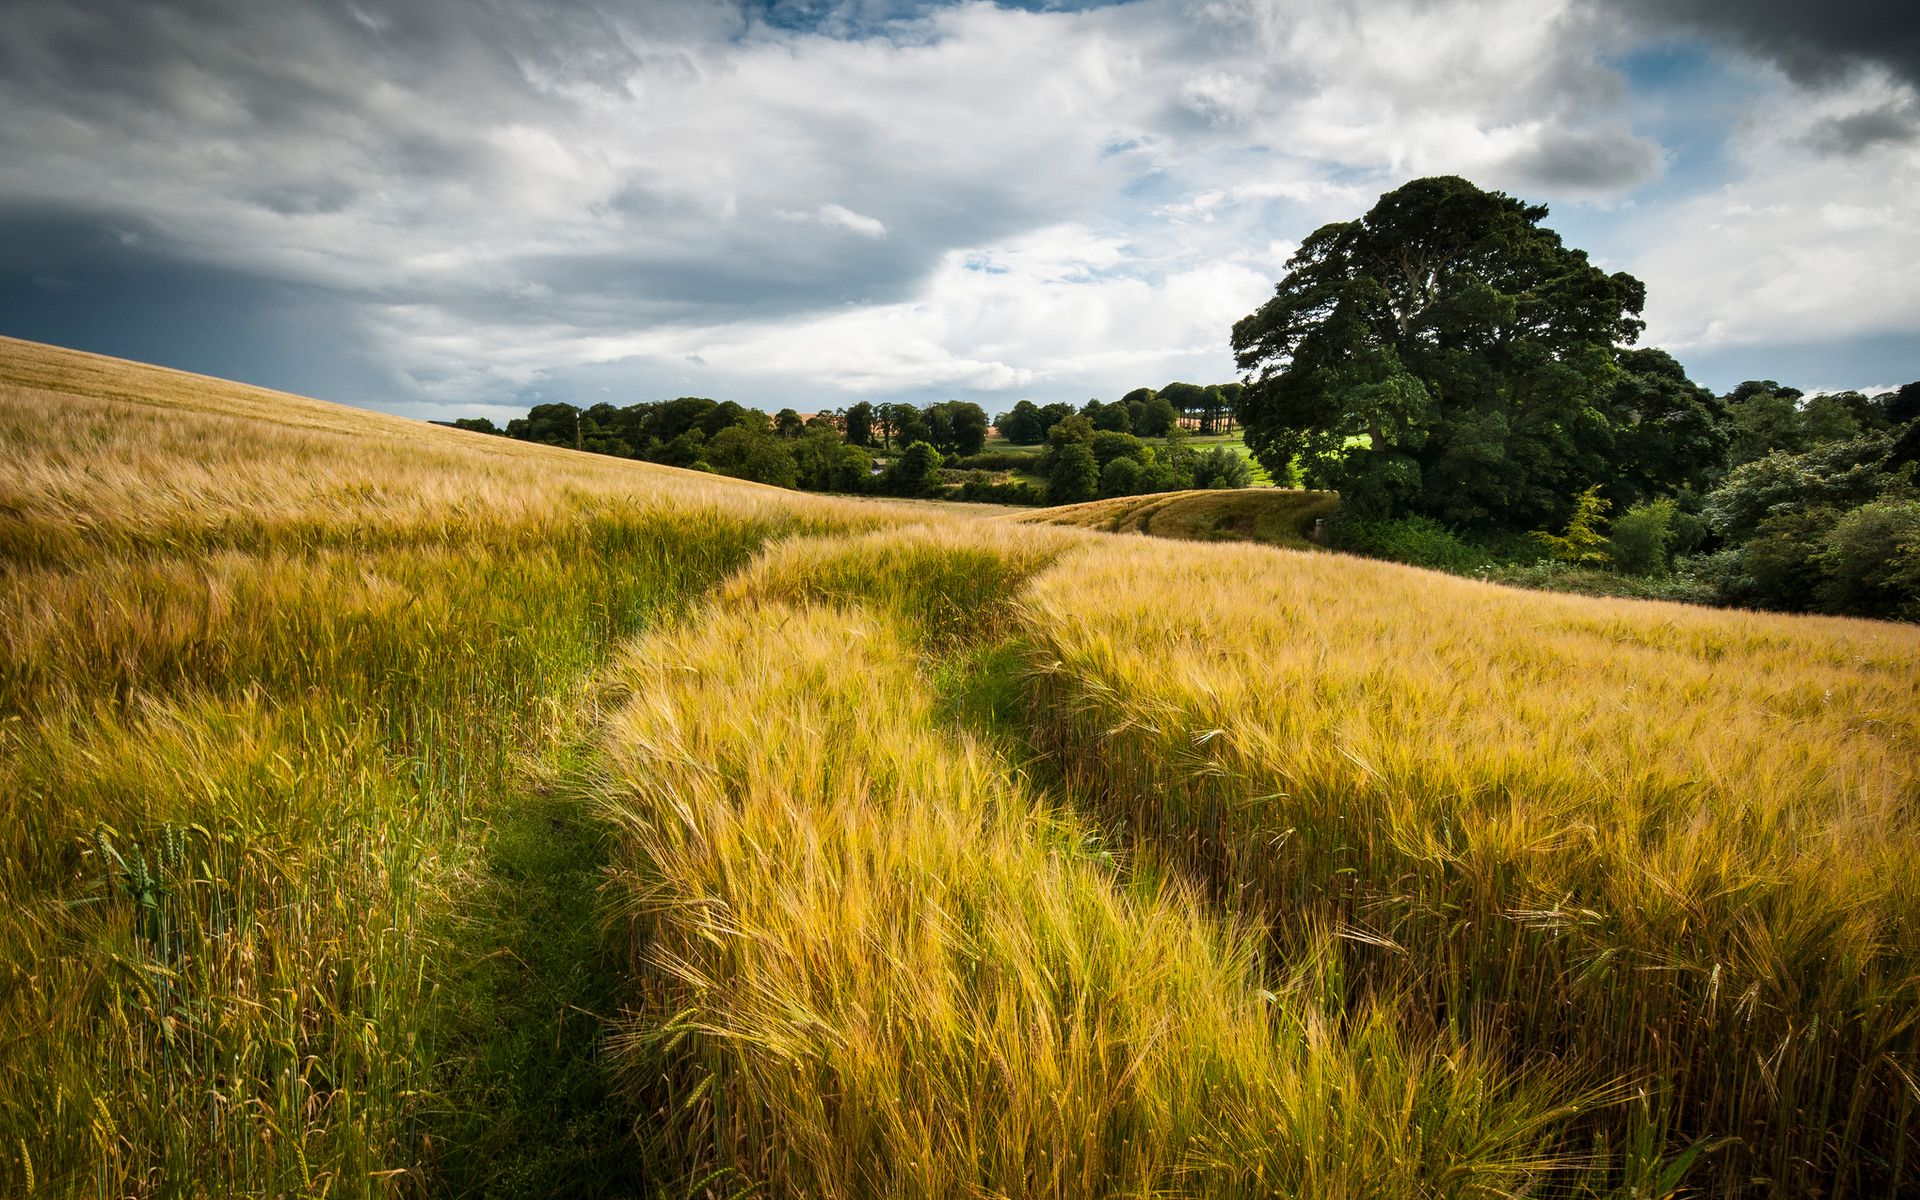 Nature Landscapes Fields Grass Wheat Hay Tracks Roads Path Gold Plants Trees Country Hills Autumn Fall Seas Field Wallpaper Landscape Wallpaper Landscape Trees Hd wallpaper field road summer grass